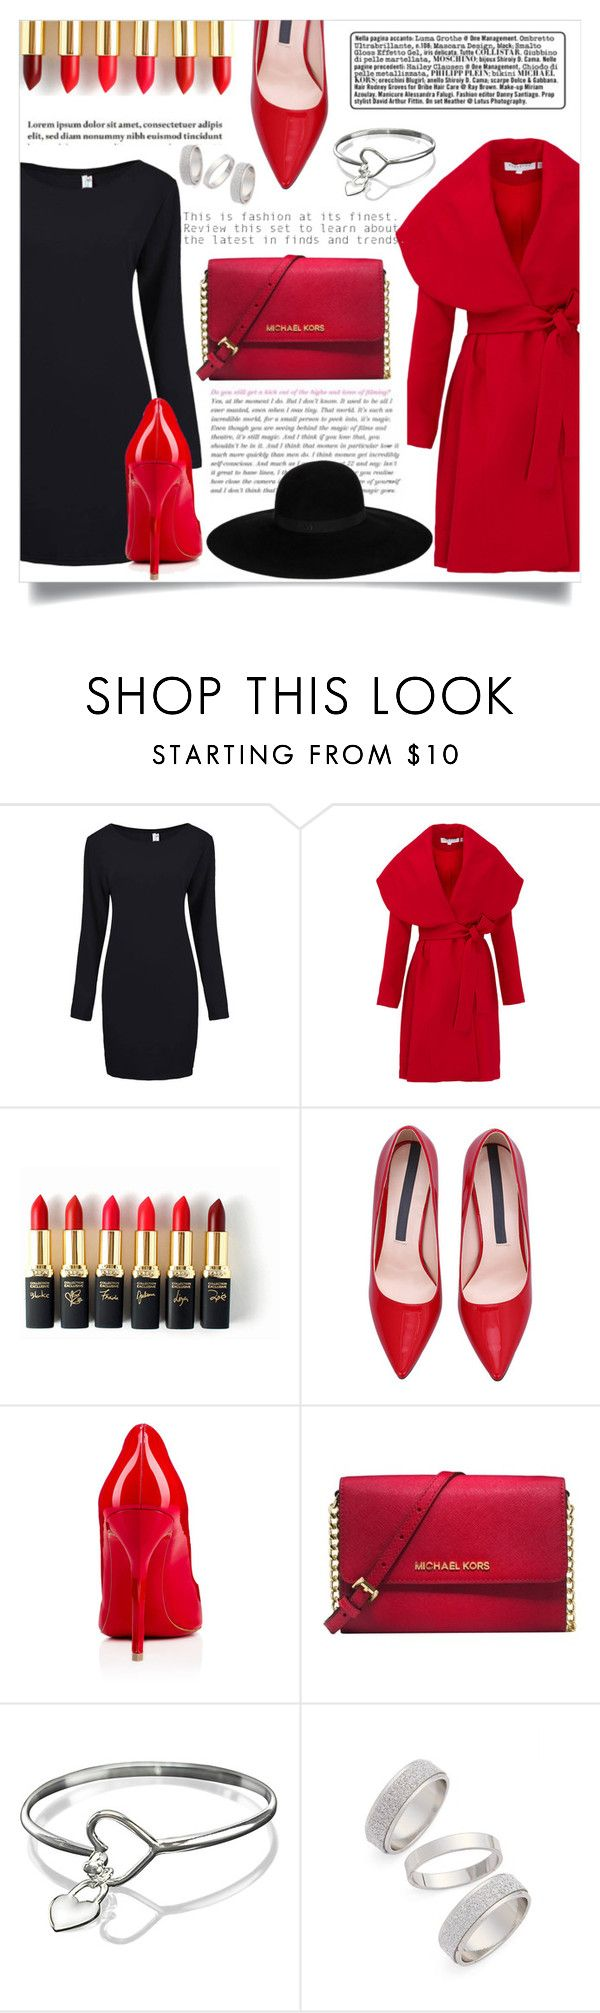 """Red style"" by andreagojkovic ❤ liked on Polyvore featuring Keepsake the Label, L'Oréal Paris, Tiffany & Co., Christian Louboutin, Michael Kors, Topshop, Maison Michel, women's clothing, women's fashion and women"